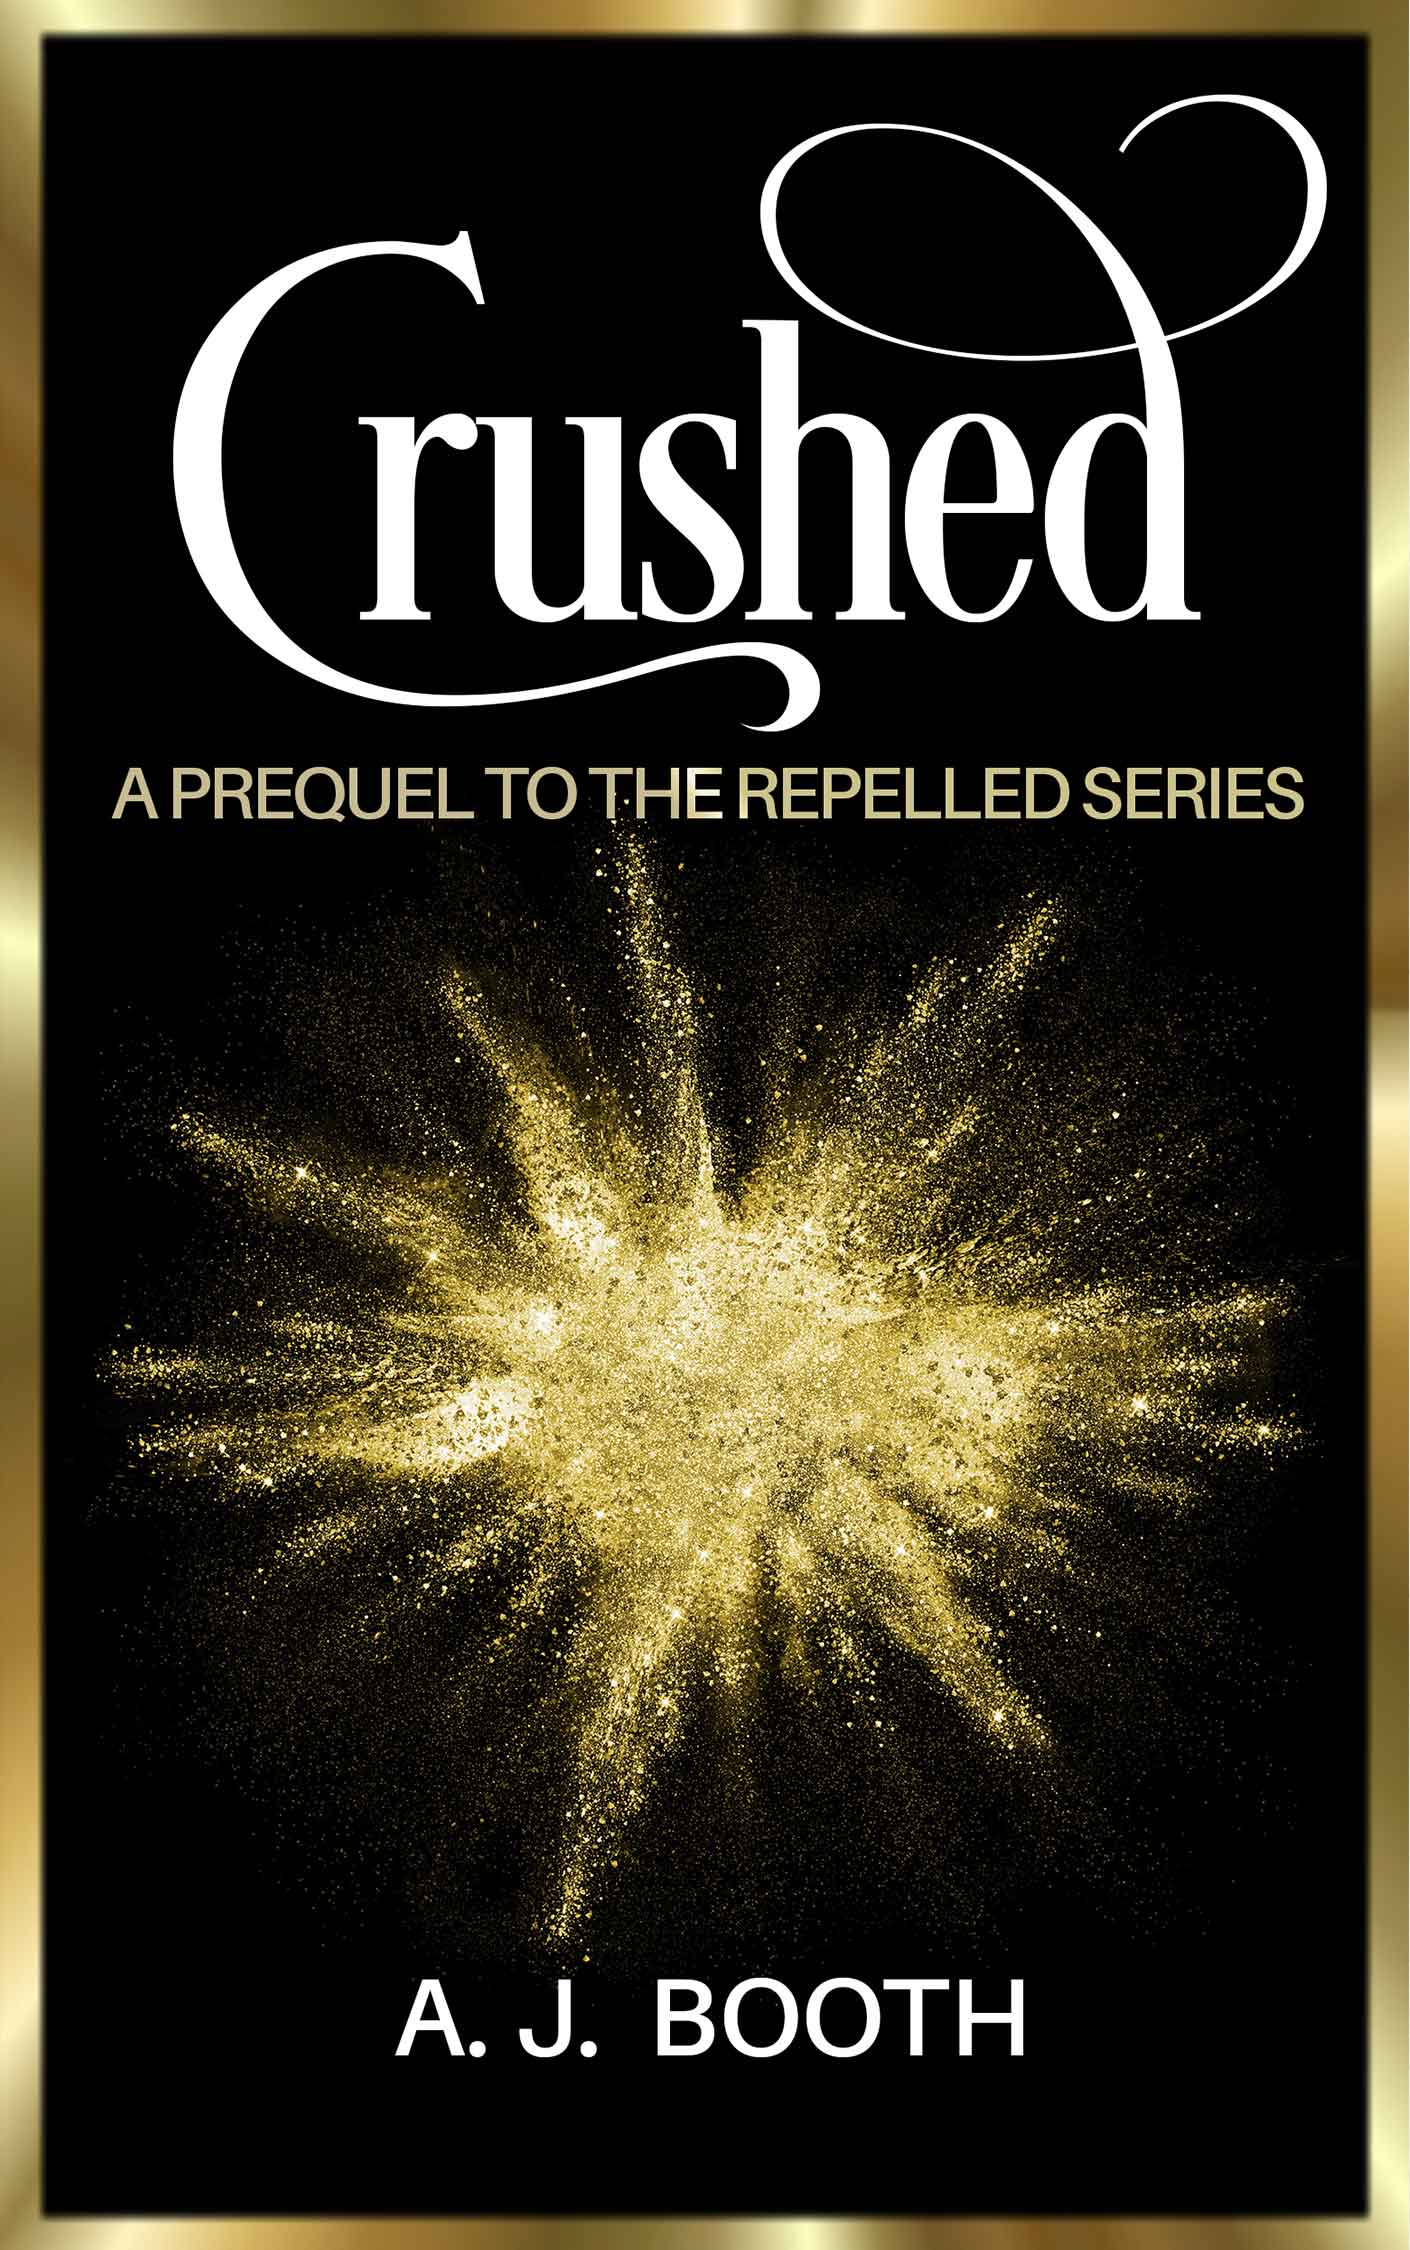 crushed-book-cover